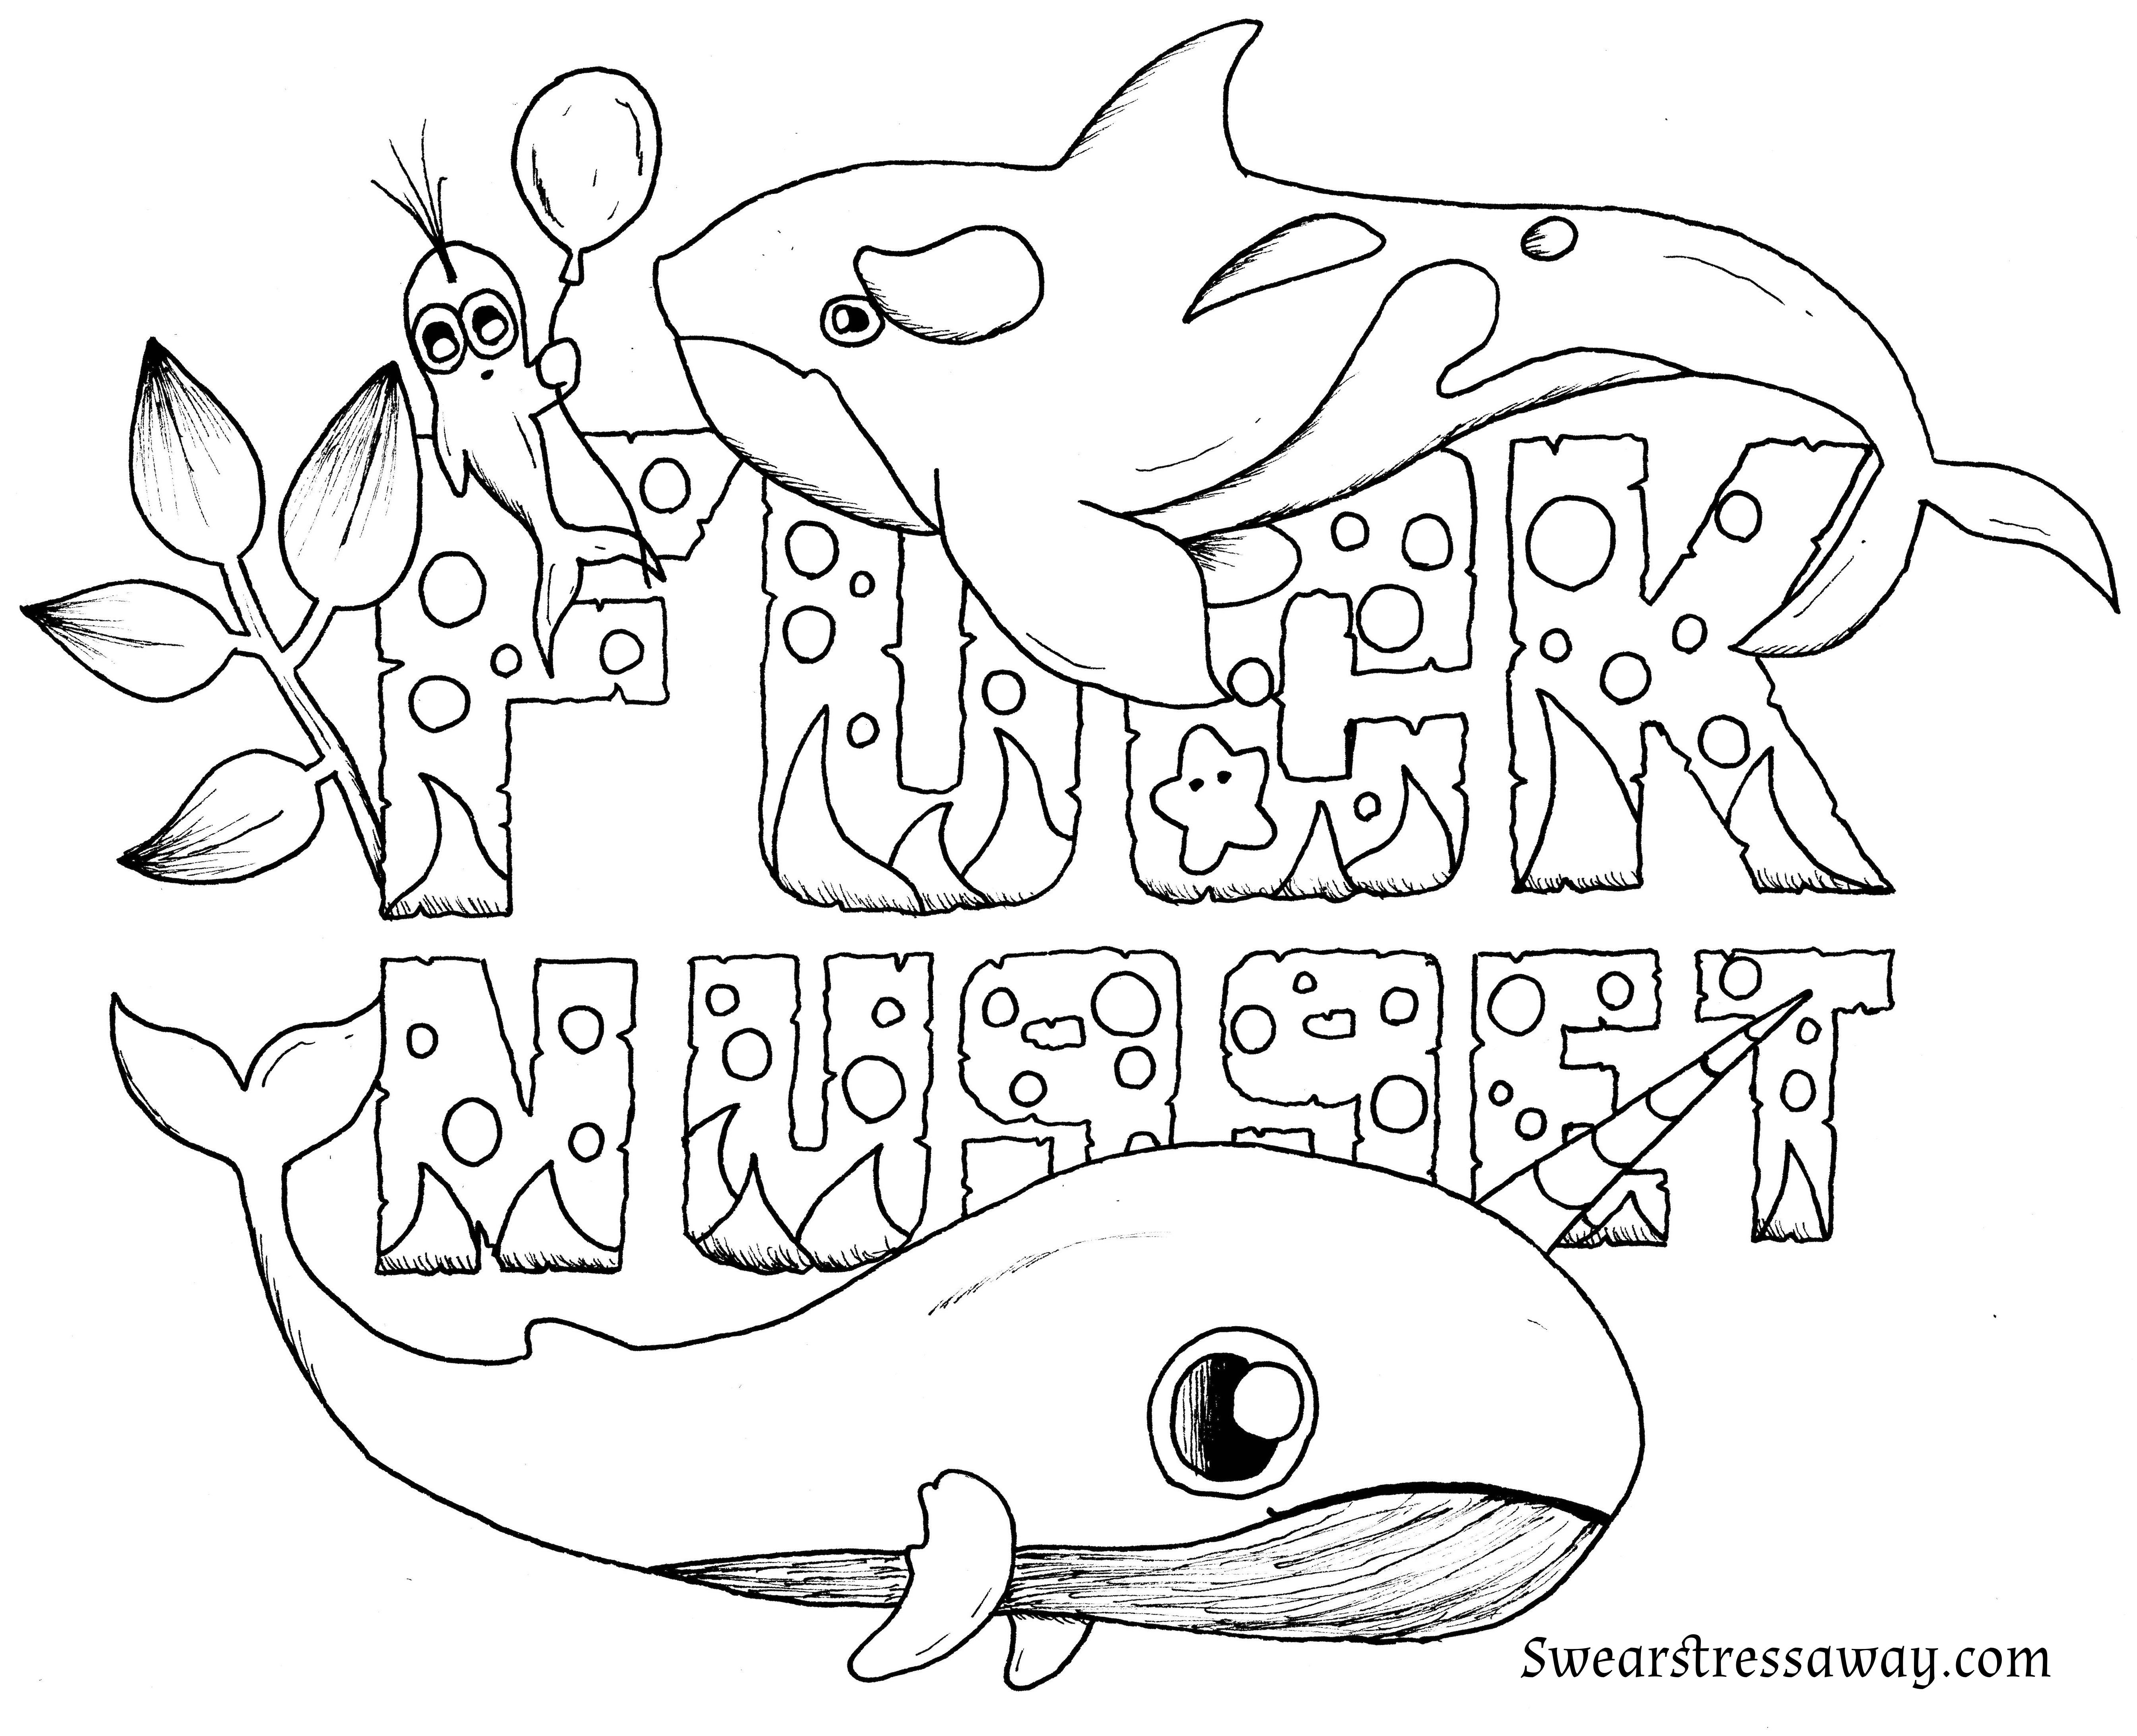 O word coloring pages - Fucknugget Swear Word Coloring Page Adult Coloring Page Swearstressaway Com Comes